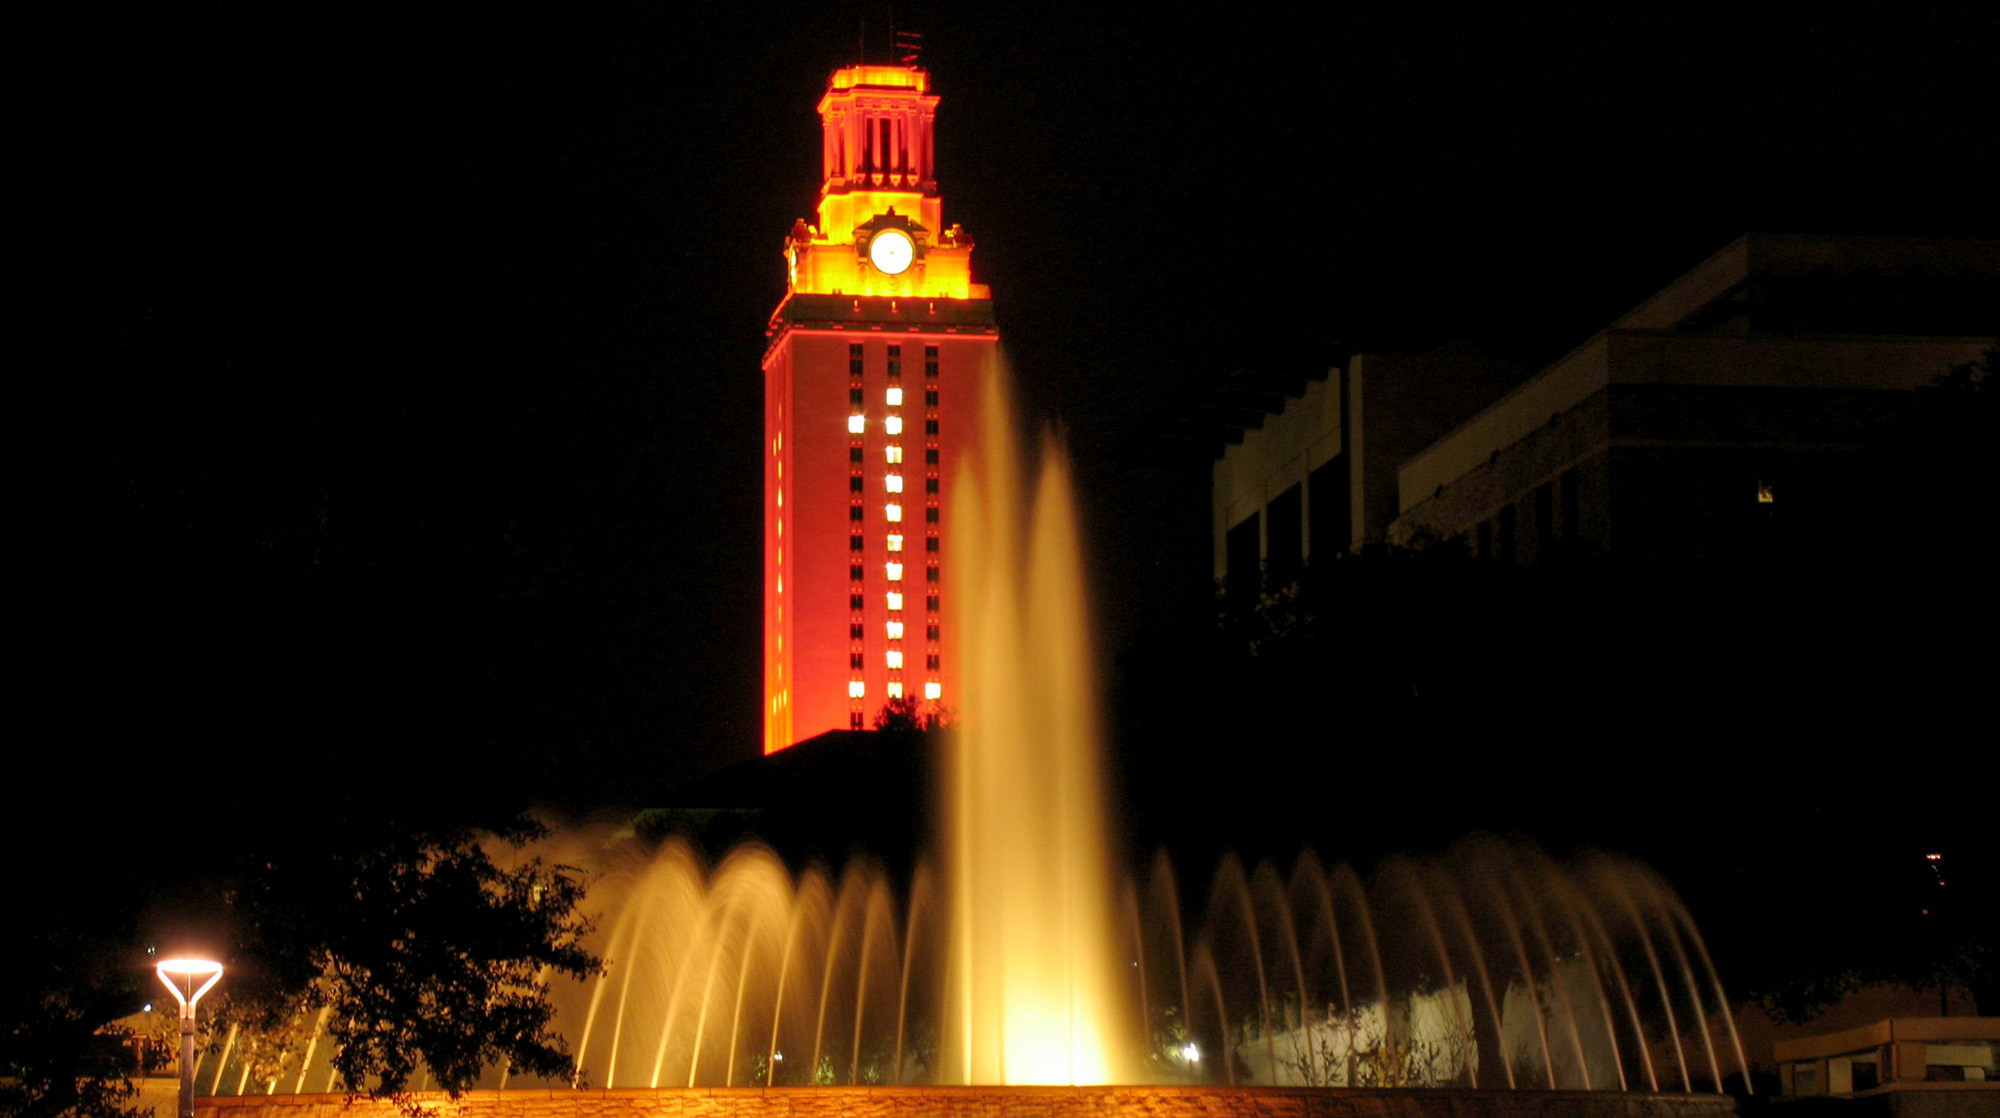 University of Texas Wallpapers (61+ images)